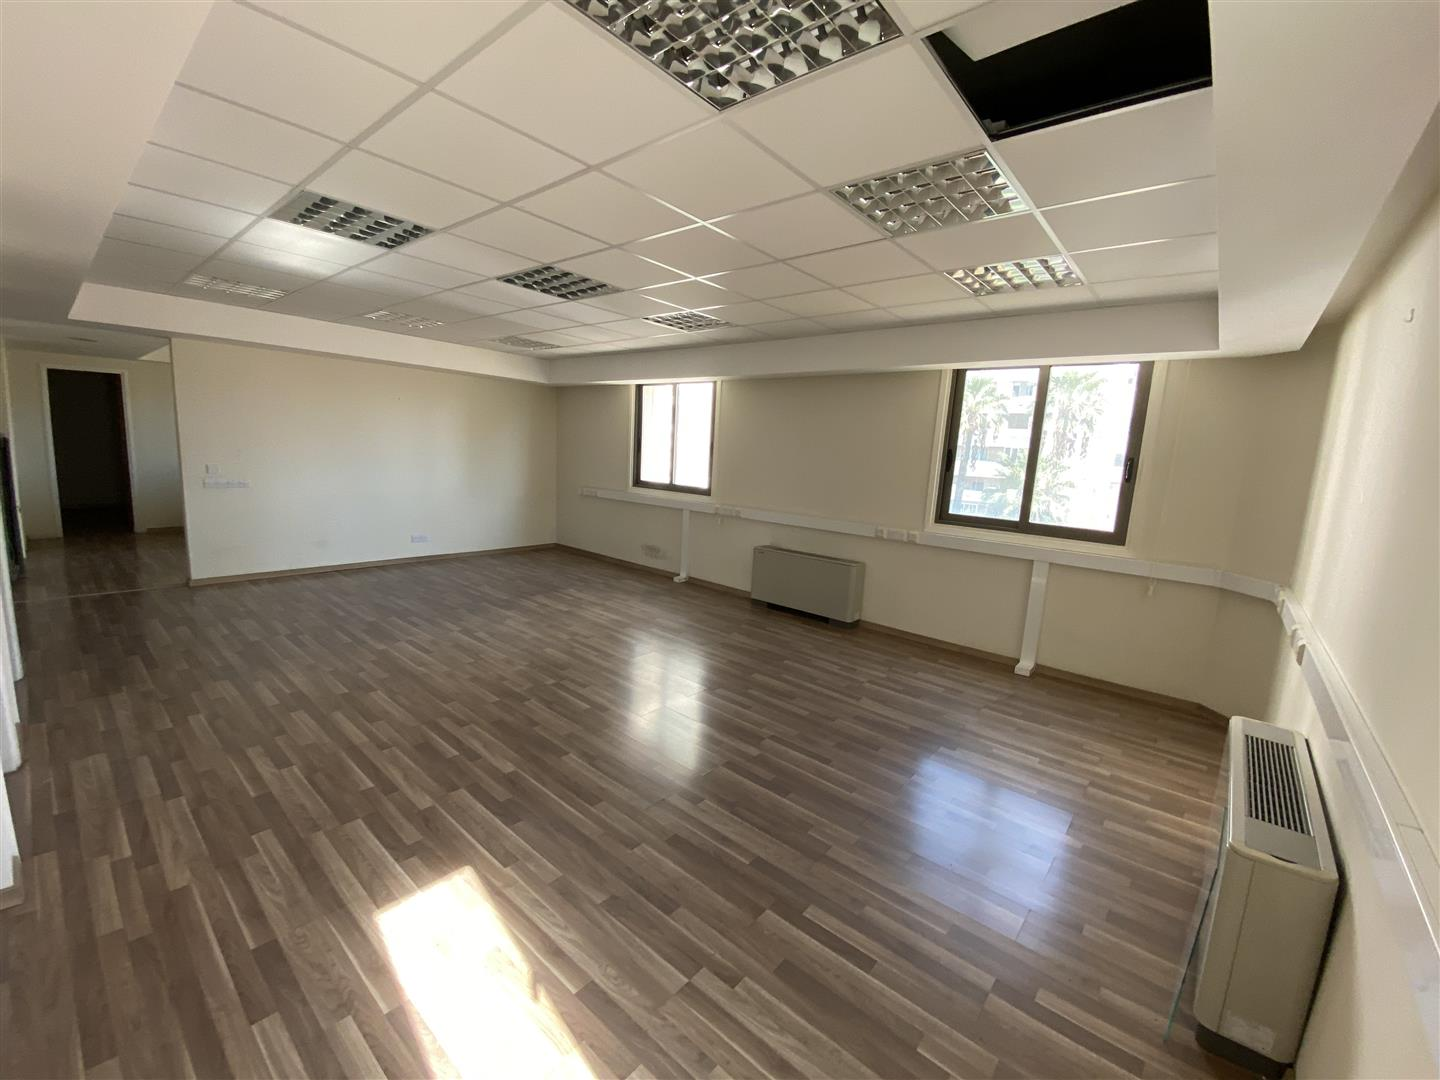 Picture of Office in prime location